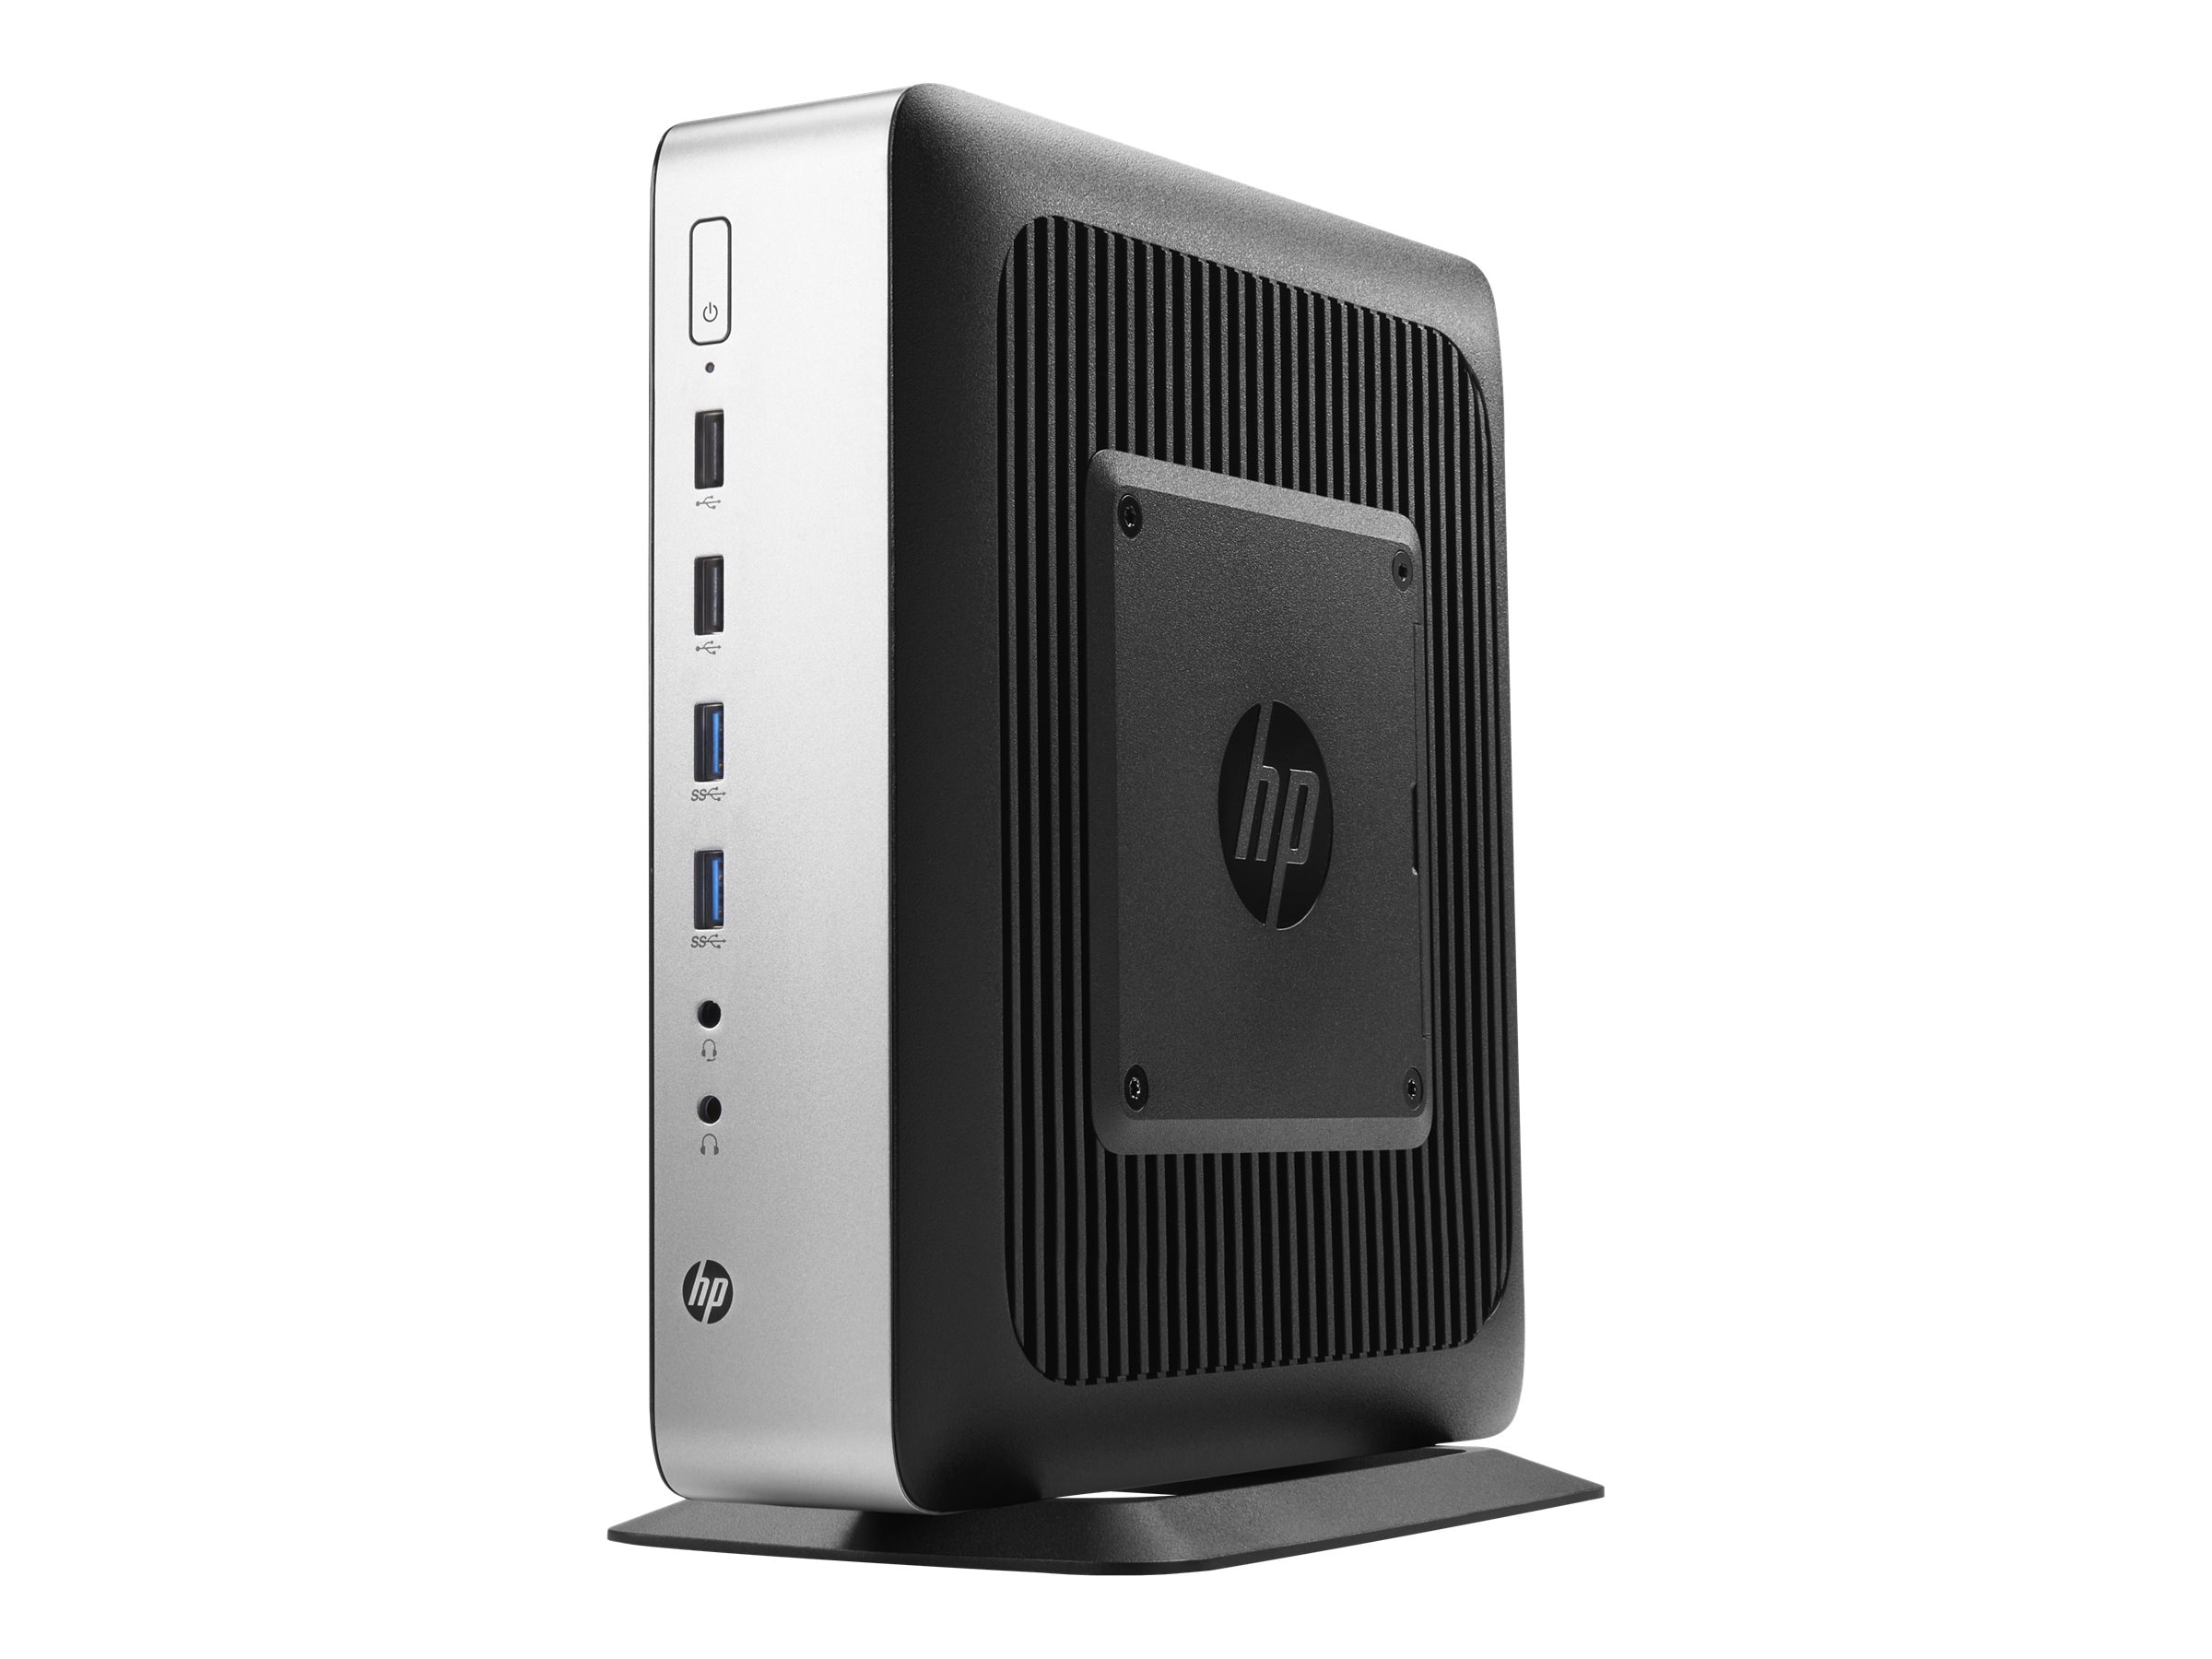 HP t730 Thin Client AMD RX-427BB 2.7GHz 8GB 32GB Flash HD9000 GbE ac WES7P, P5V91UT#ABA, 30886076, Thin Client Hardware